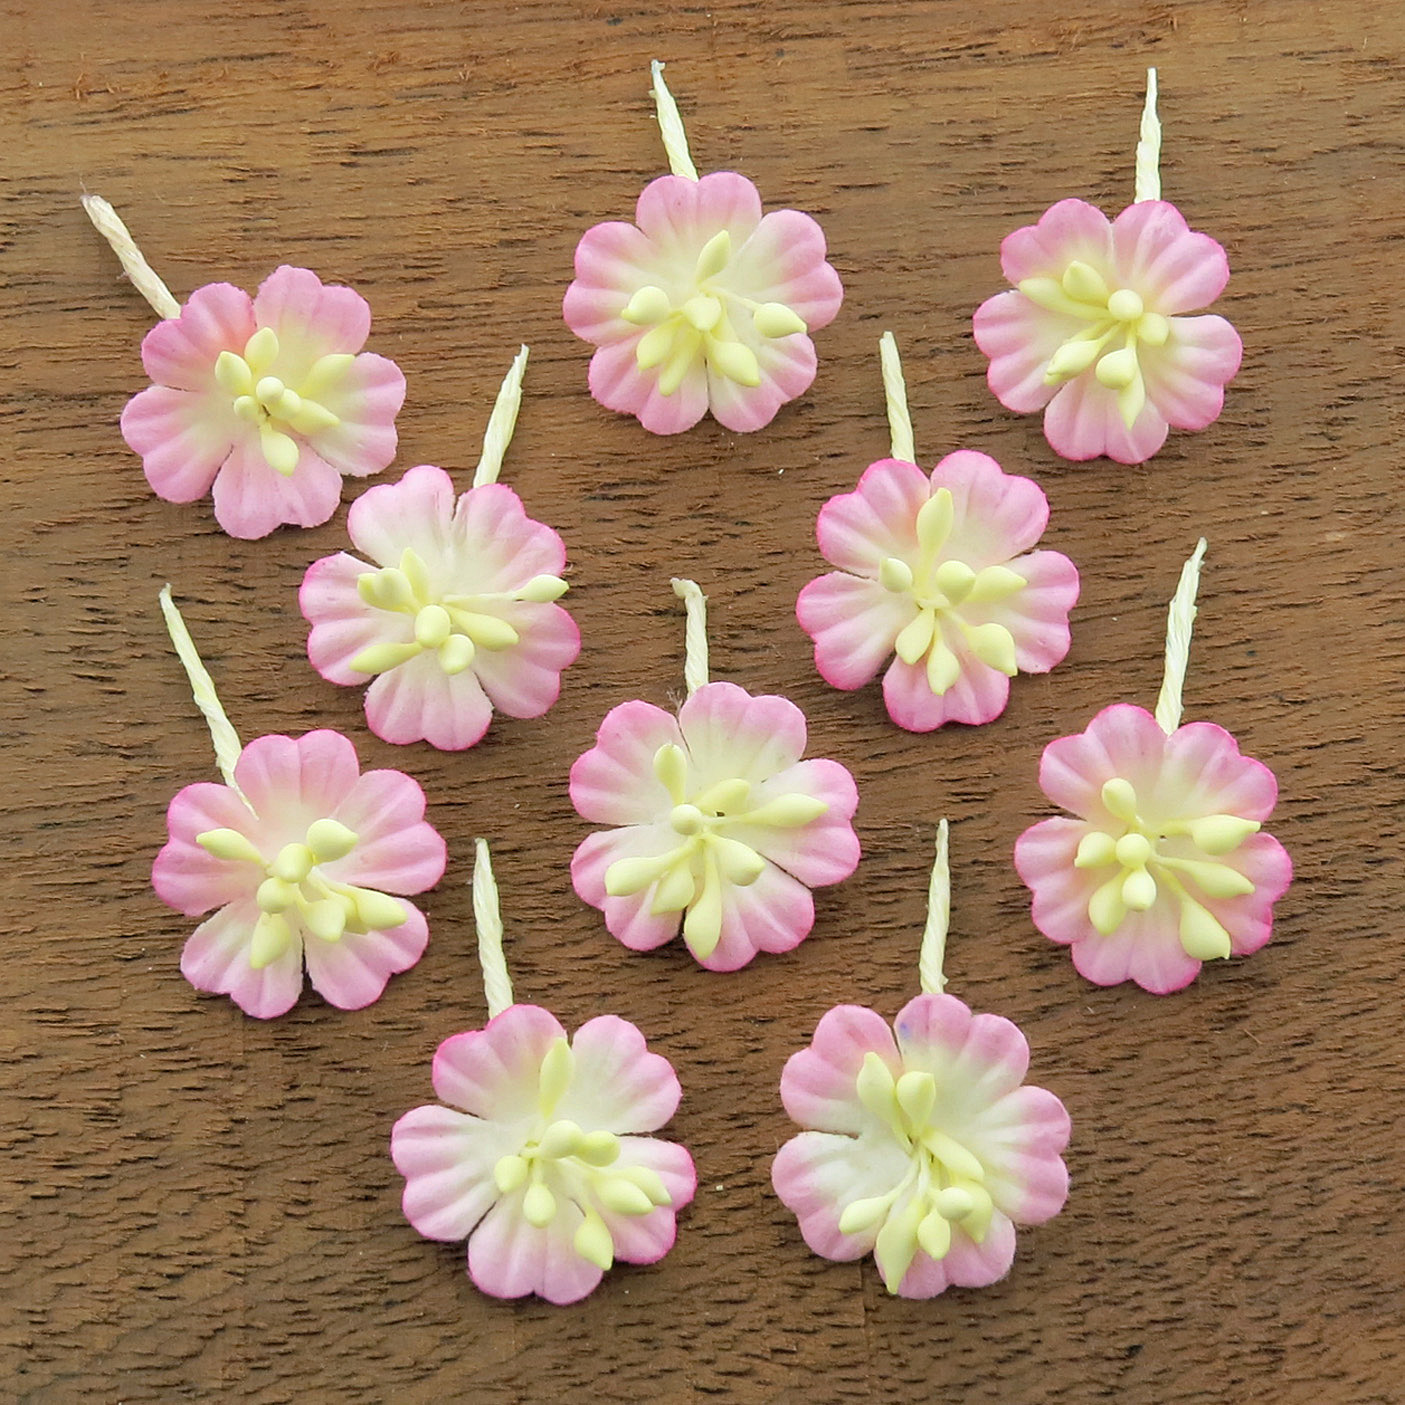 2-TONE BABY PINK/IVORY COTTON STEM MULBERRY PAPER FLOWERS - SET F